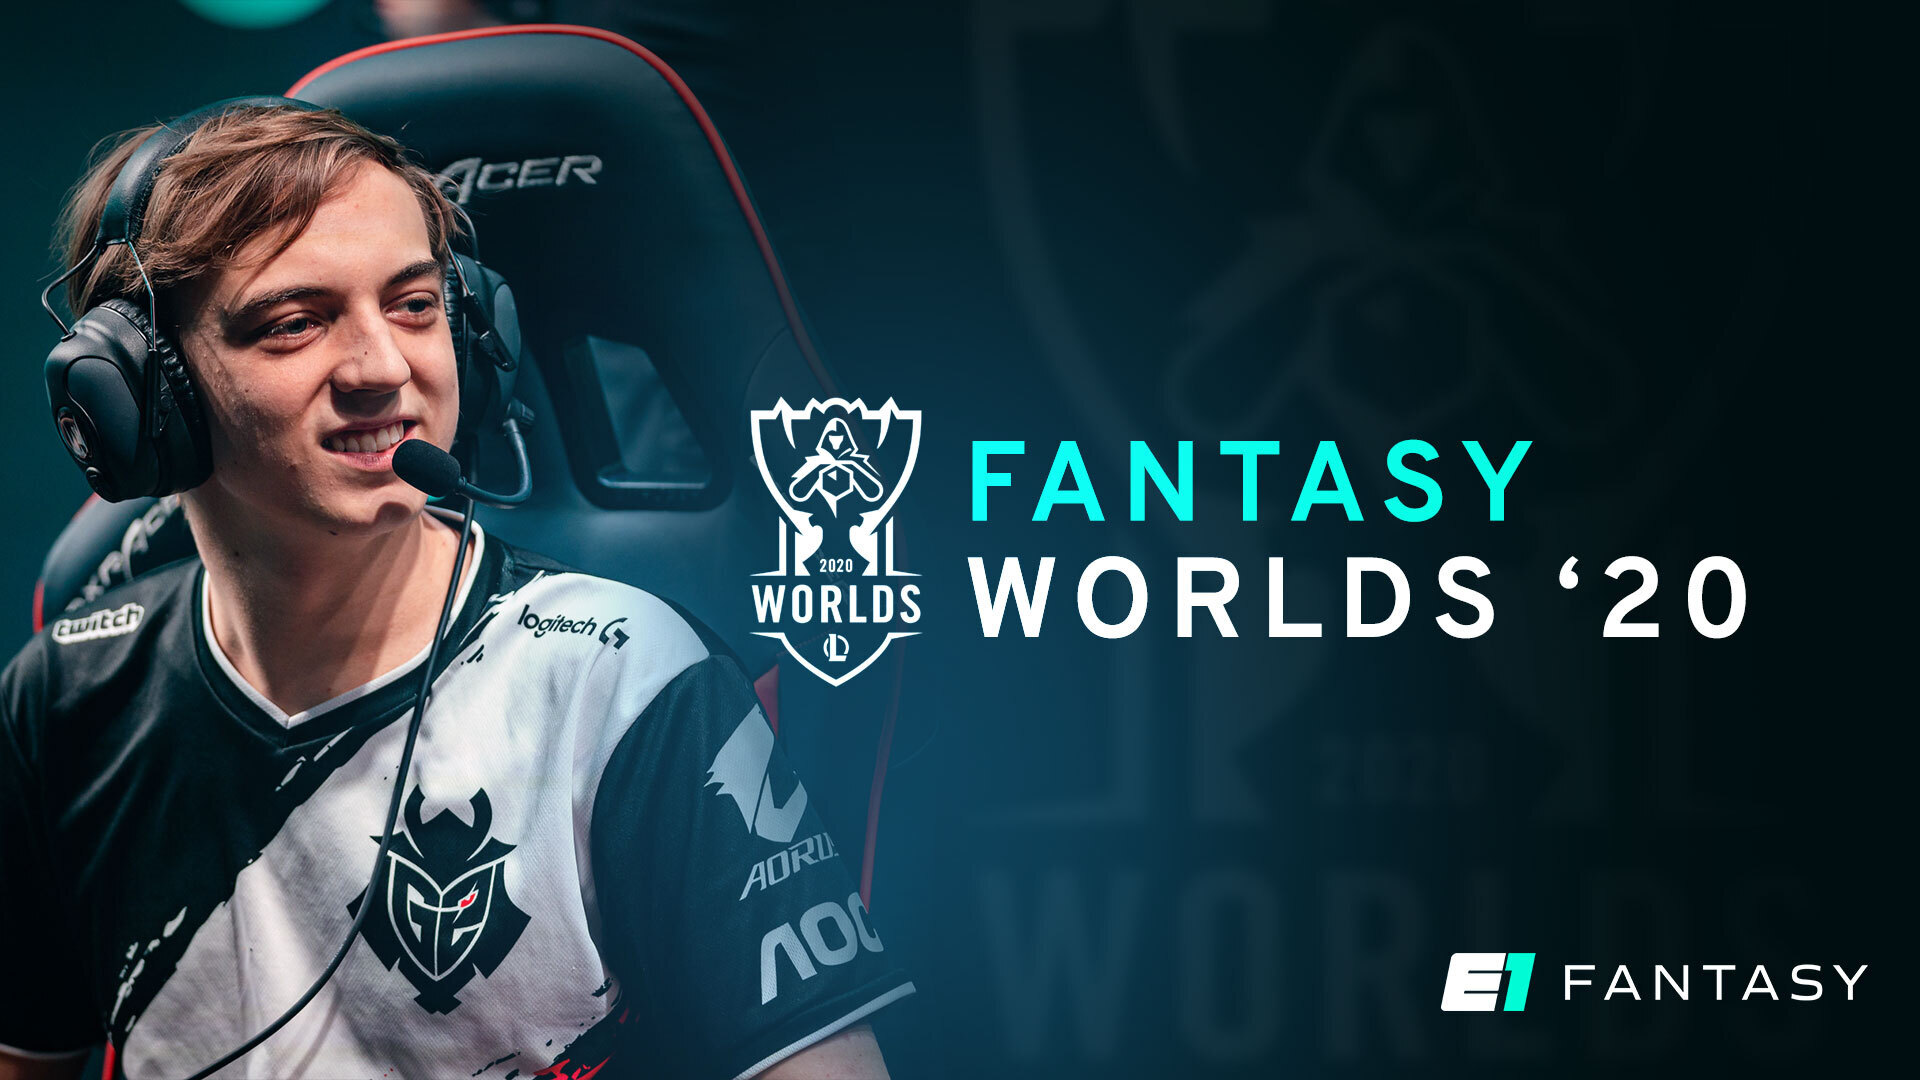 Worlds Fantasy Format + New Features!